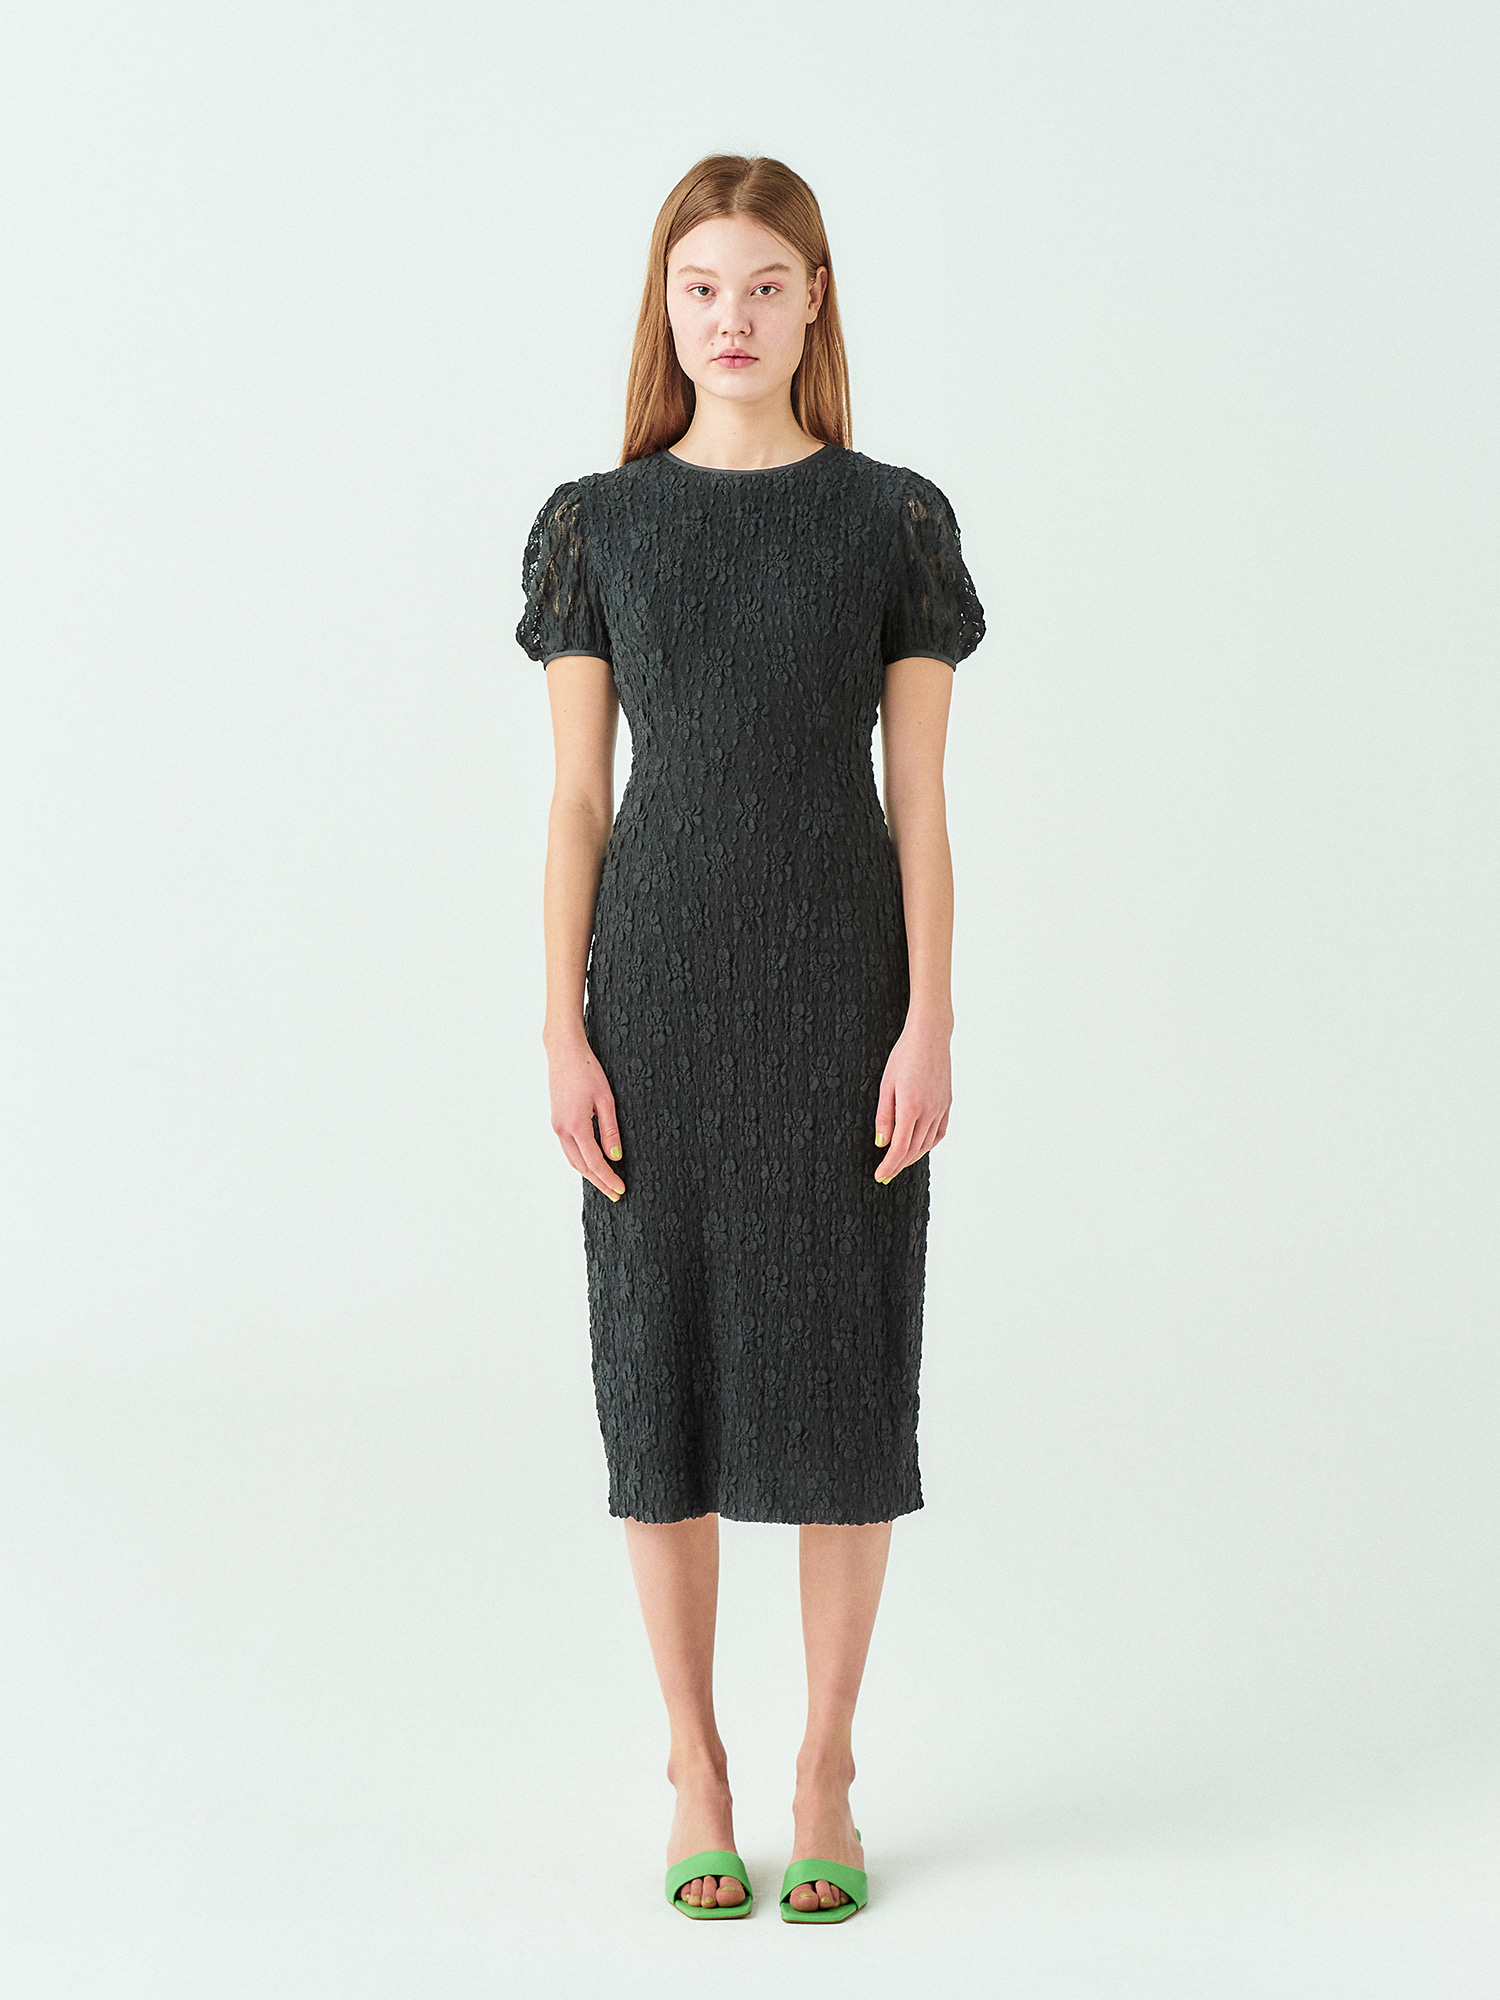 Lace Puff Line Dress in Black